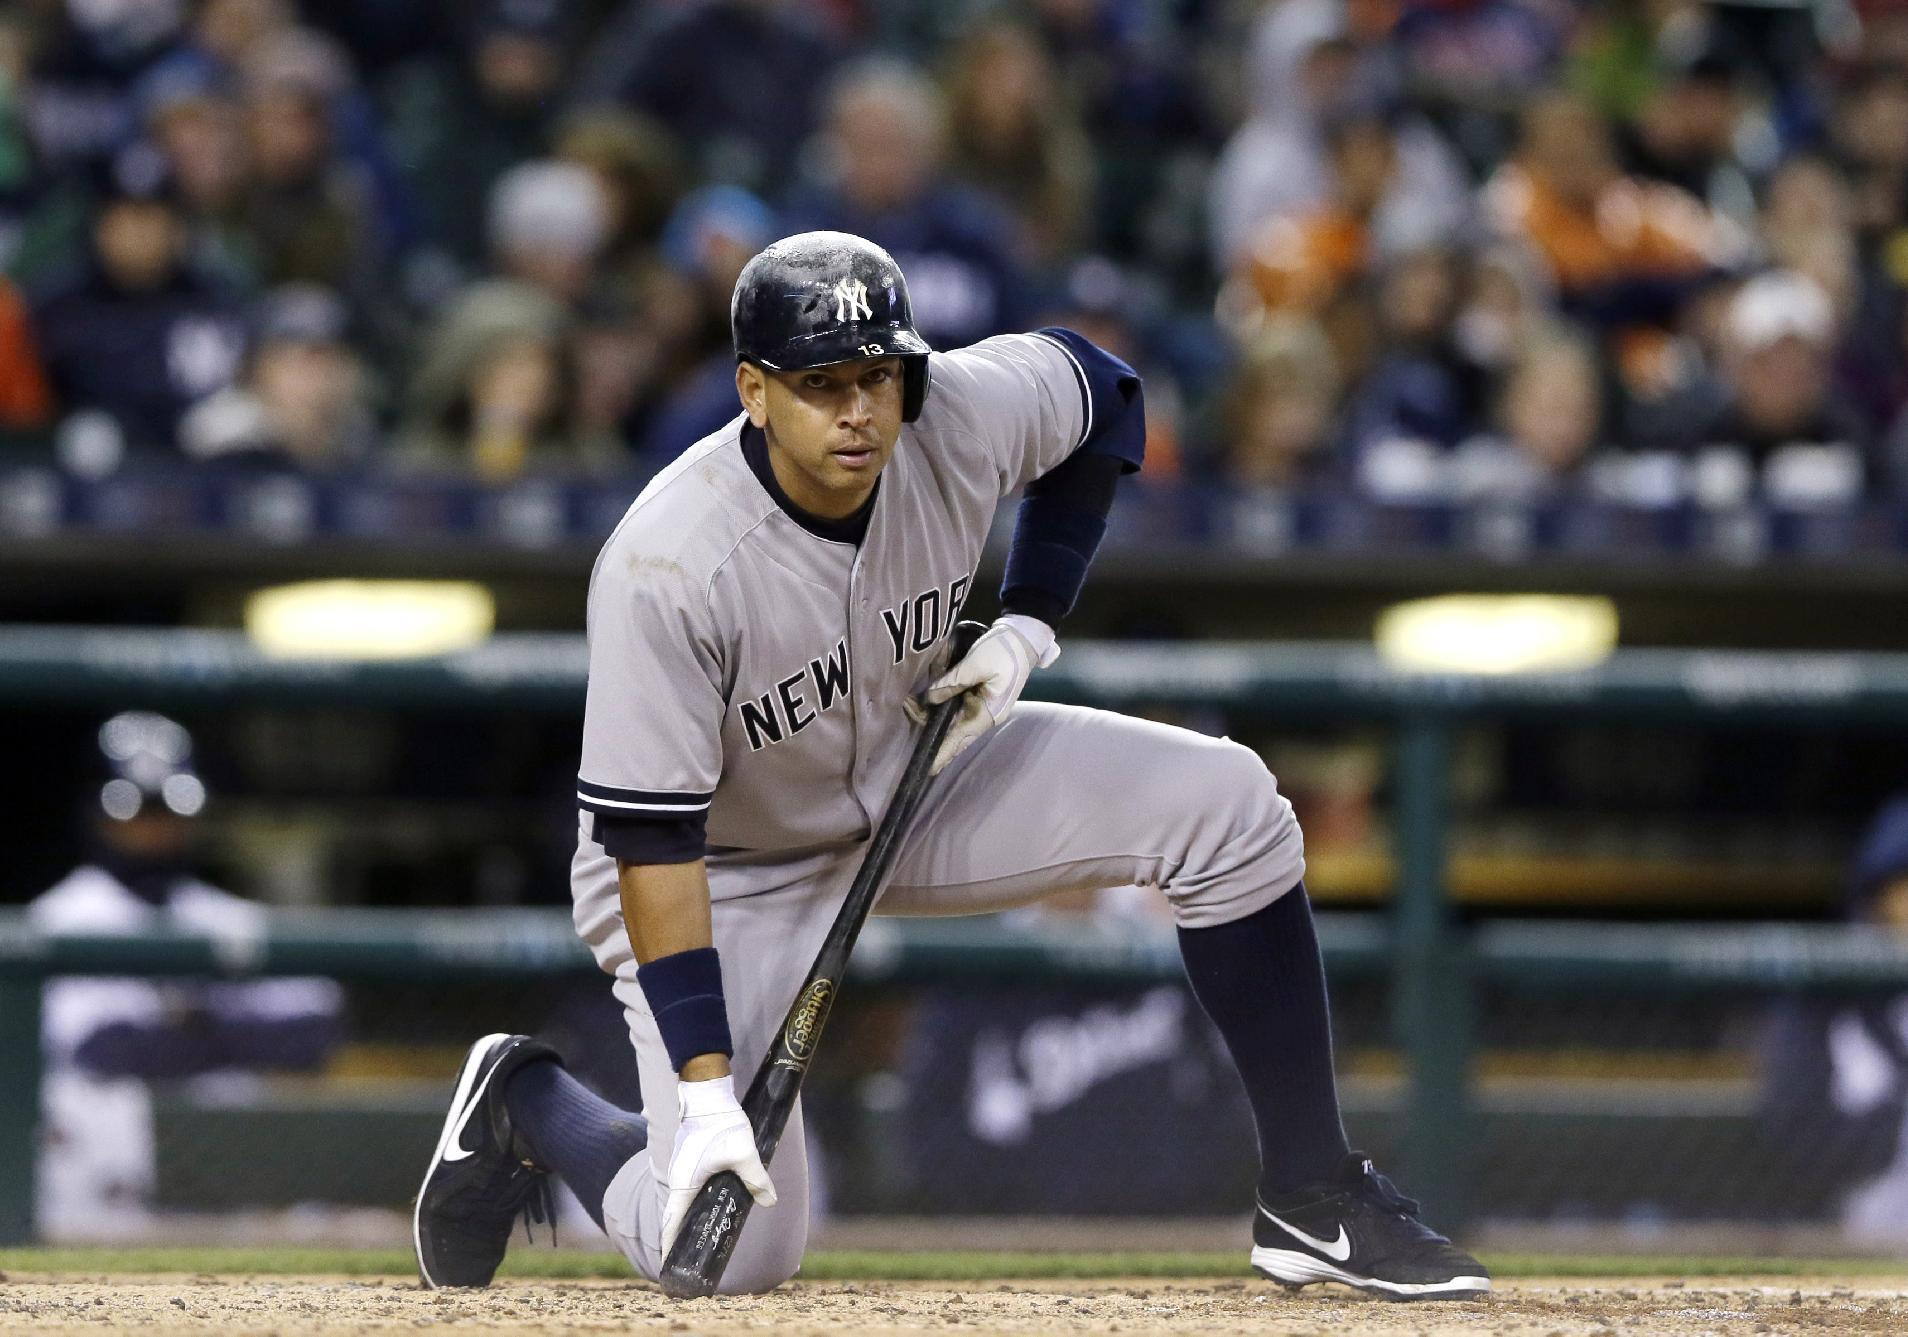 Rodriguez exceeds expectations, helps Yankees stay relevant